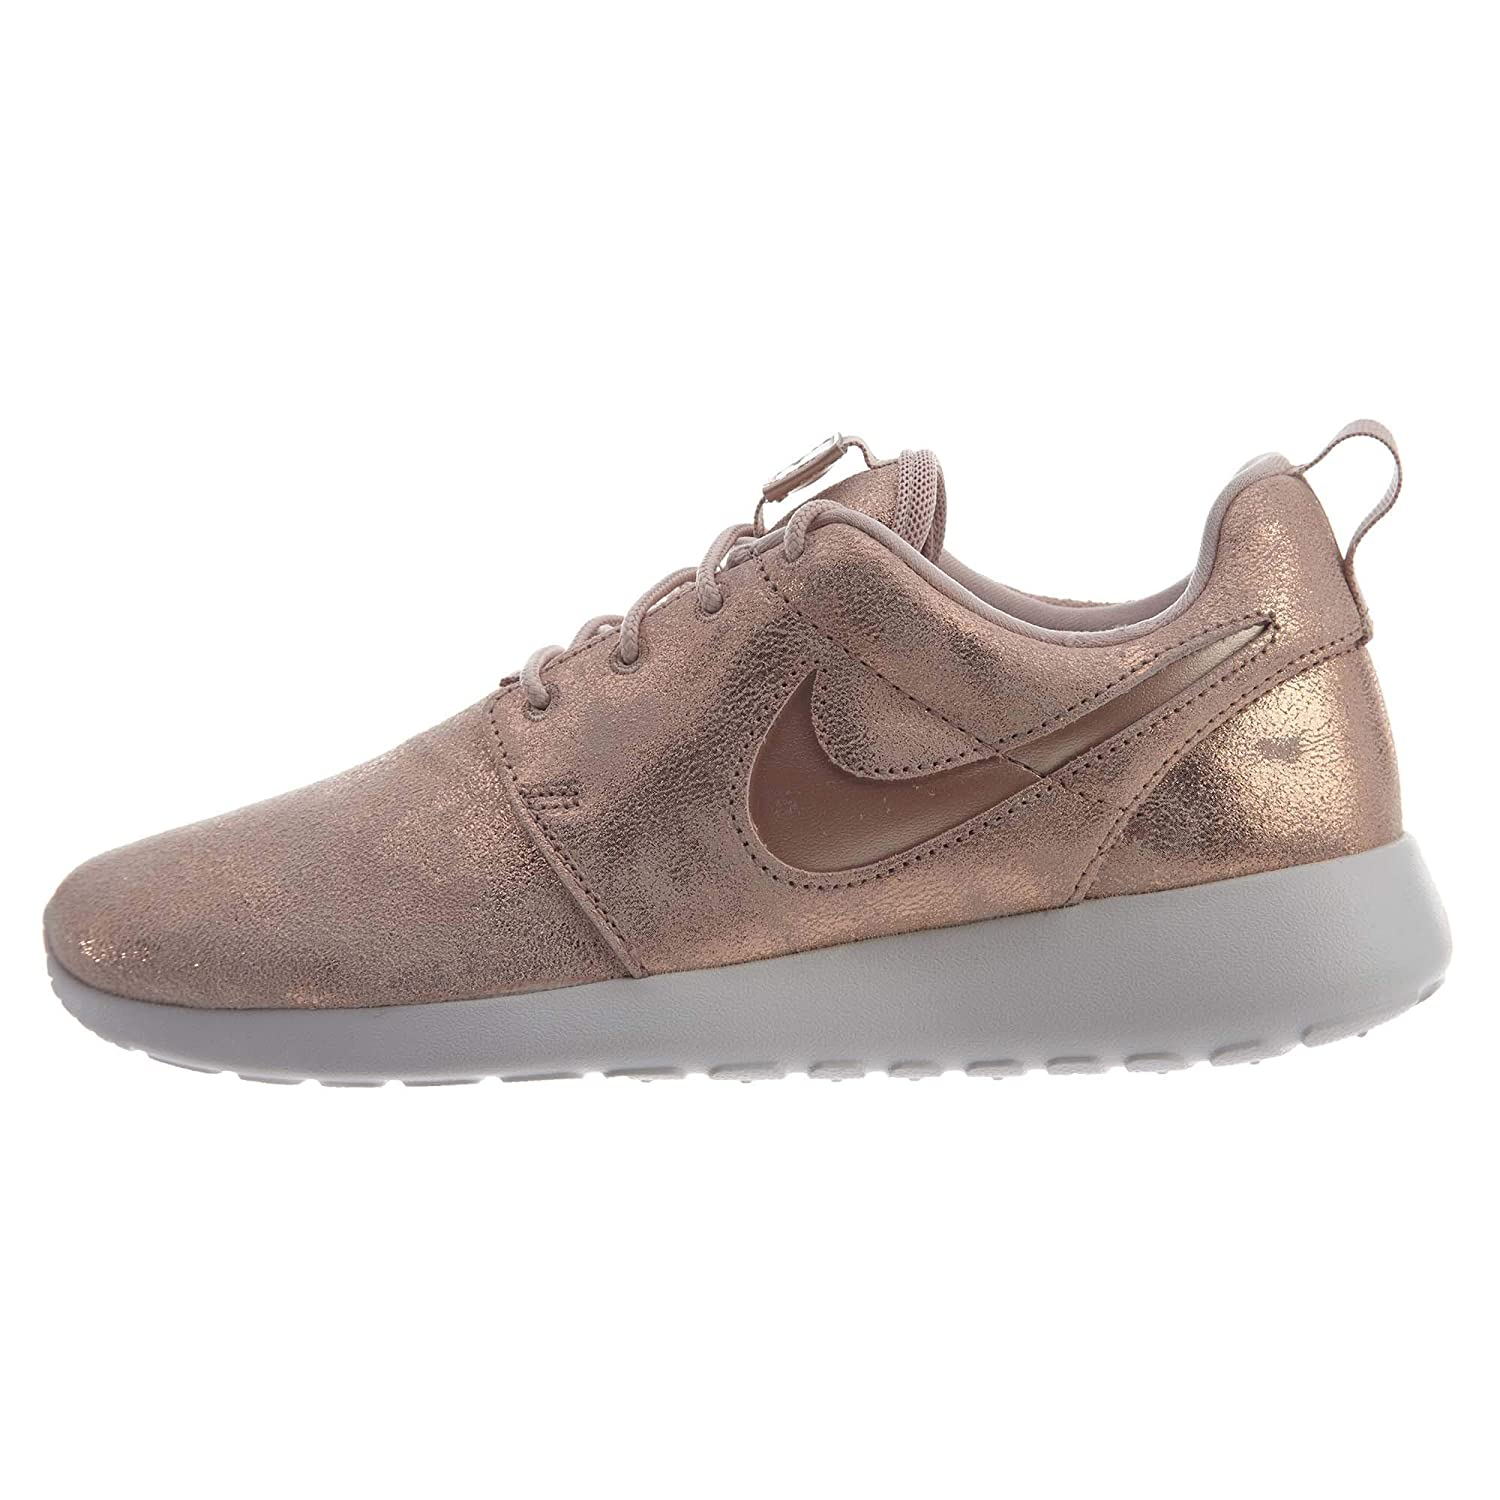 on sale 72d3b 834eb Nike Women's Roshe One Premium Shoe: Amazon.ca: Shoes & Handbags